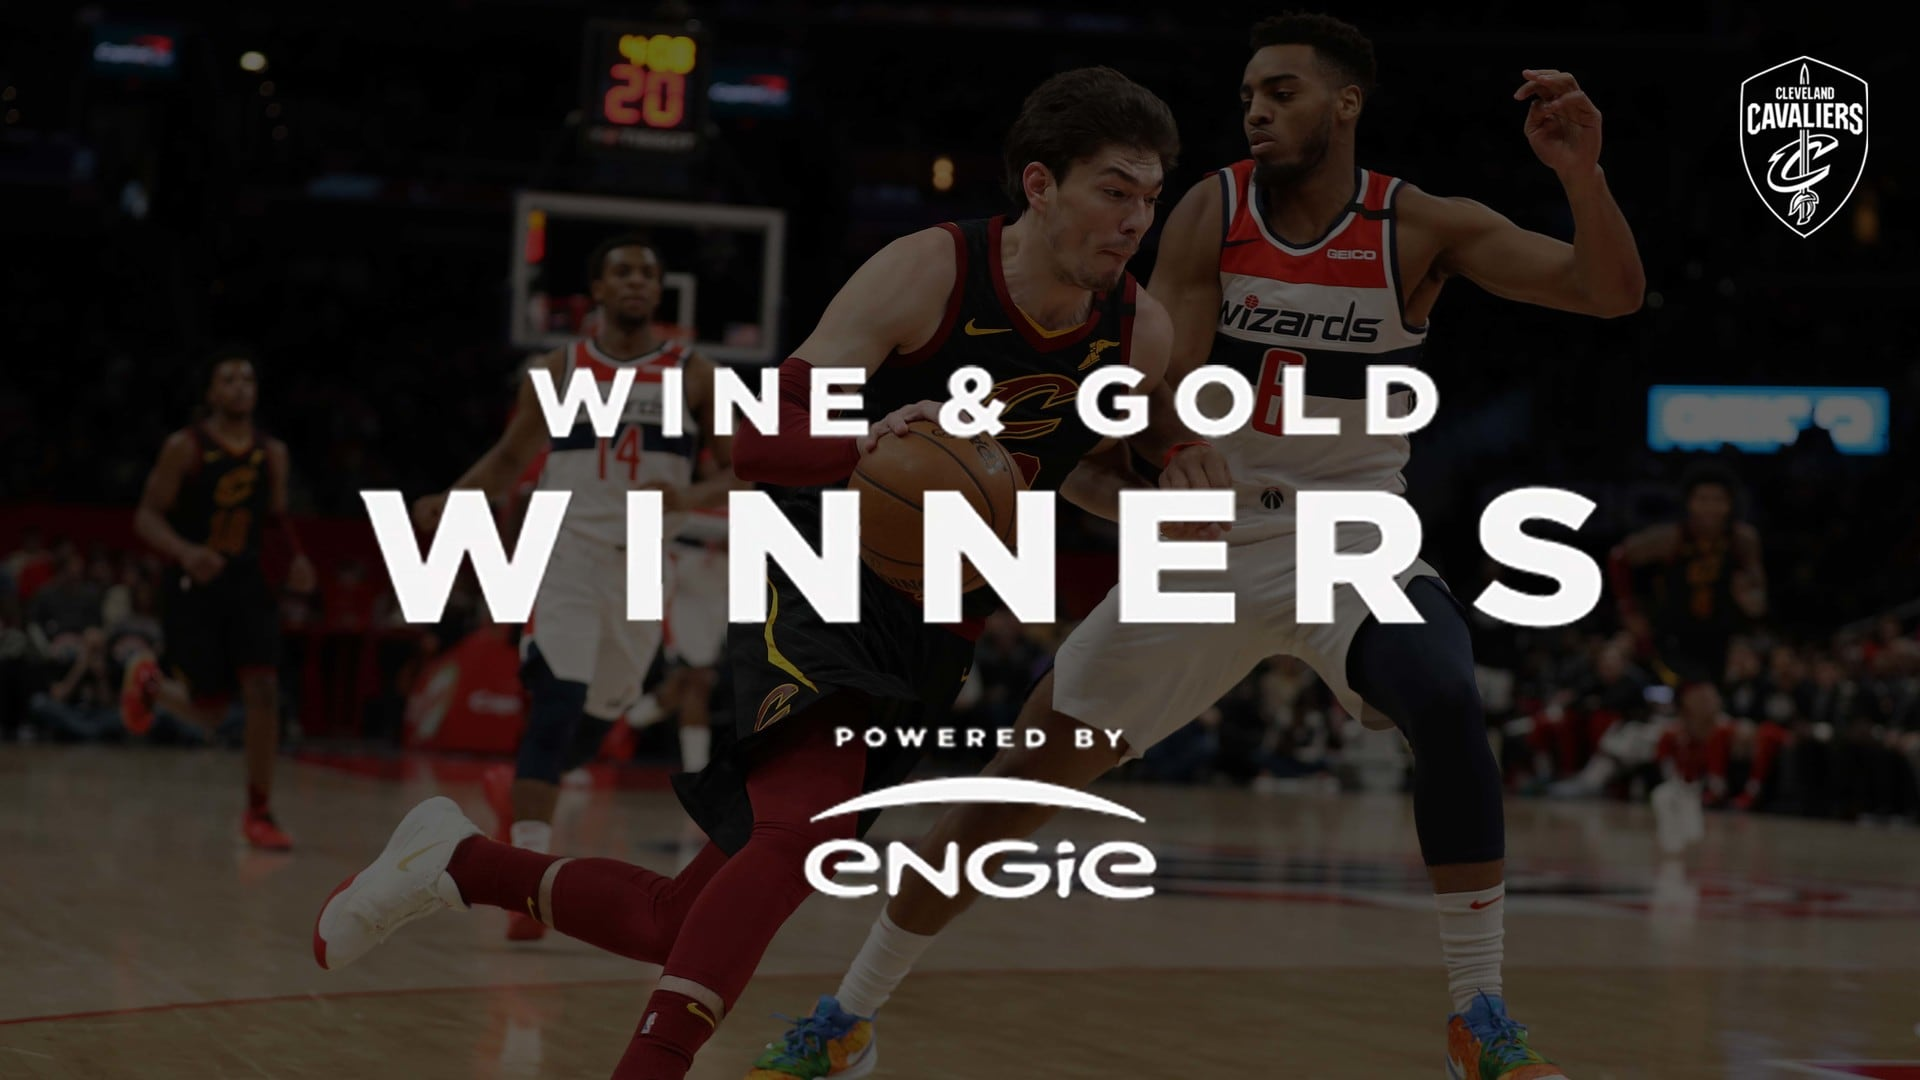 Wine & Gold Winners Powered by ENGIE